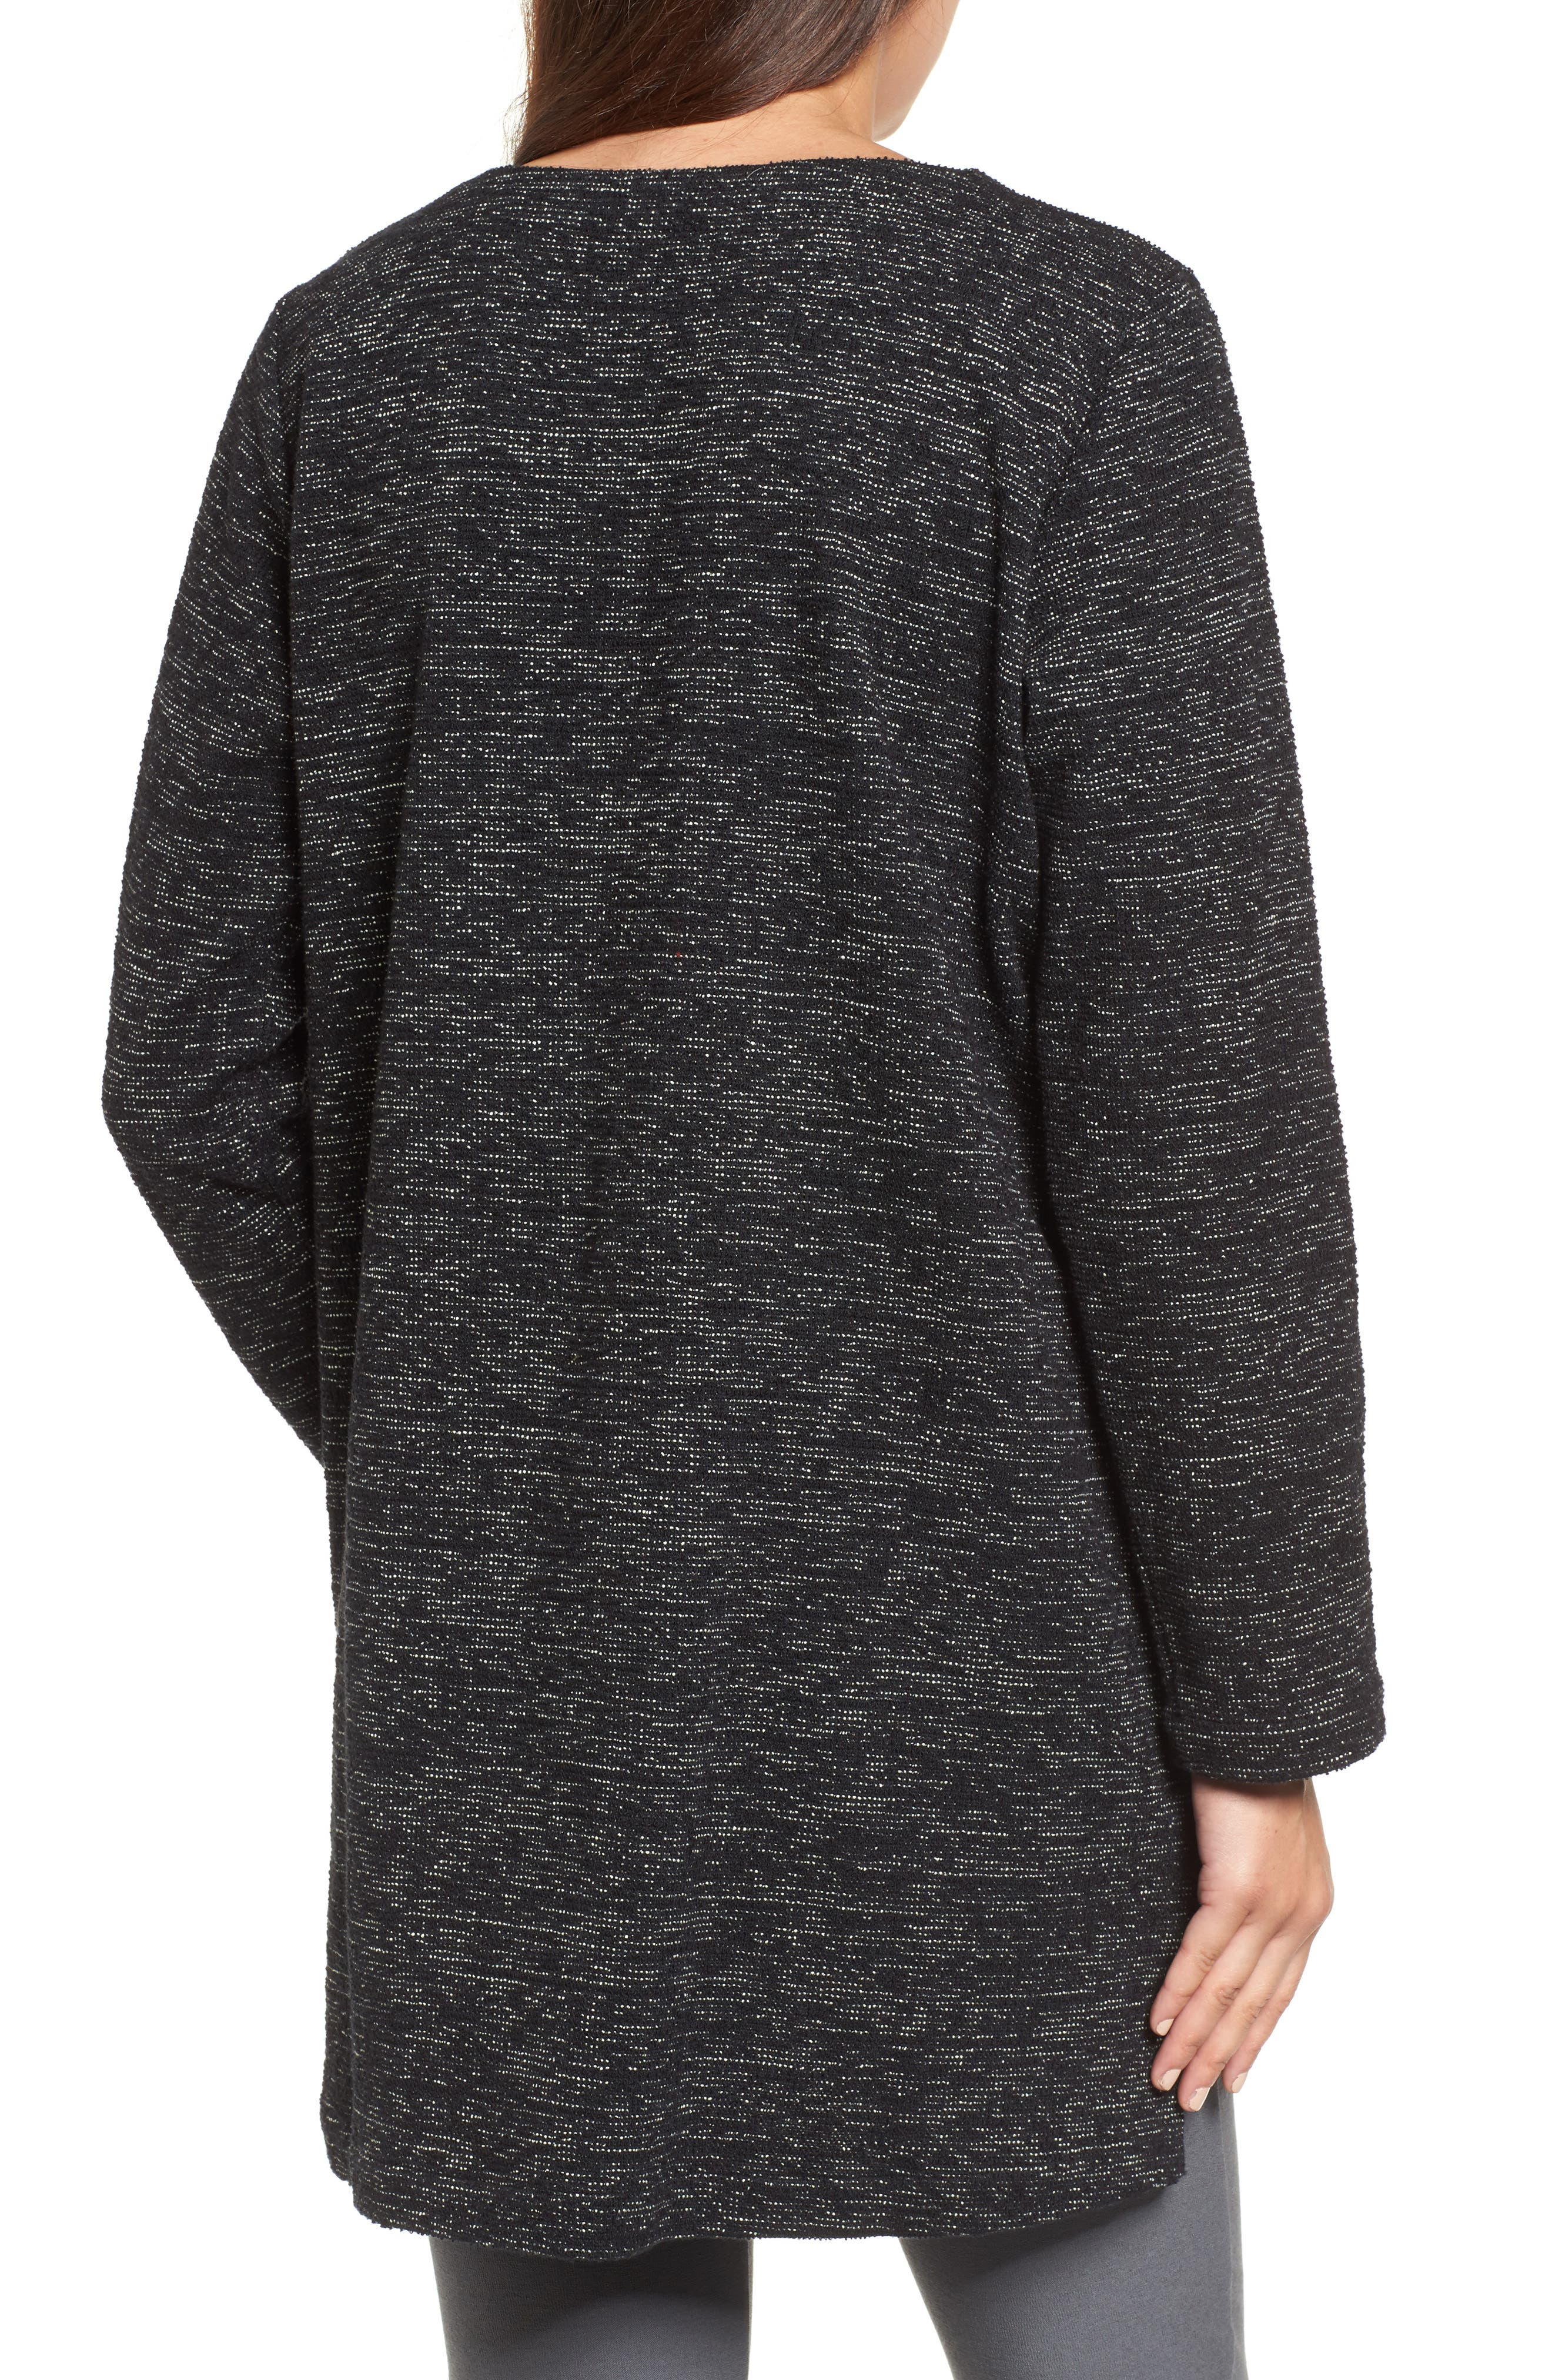 Boxy Organic Cotton Blend Tunic Sweater,                             Alternate thumbnail 2, color,                             001